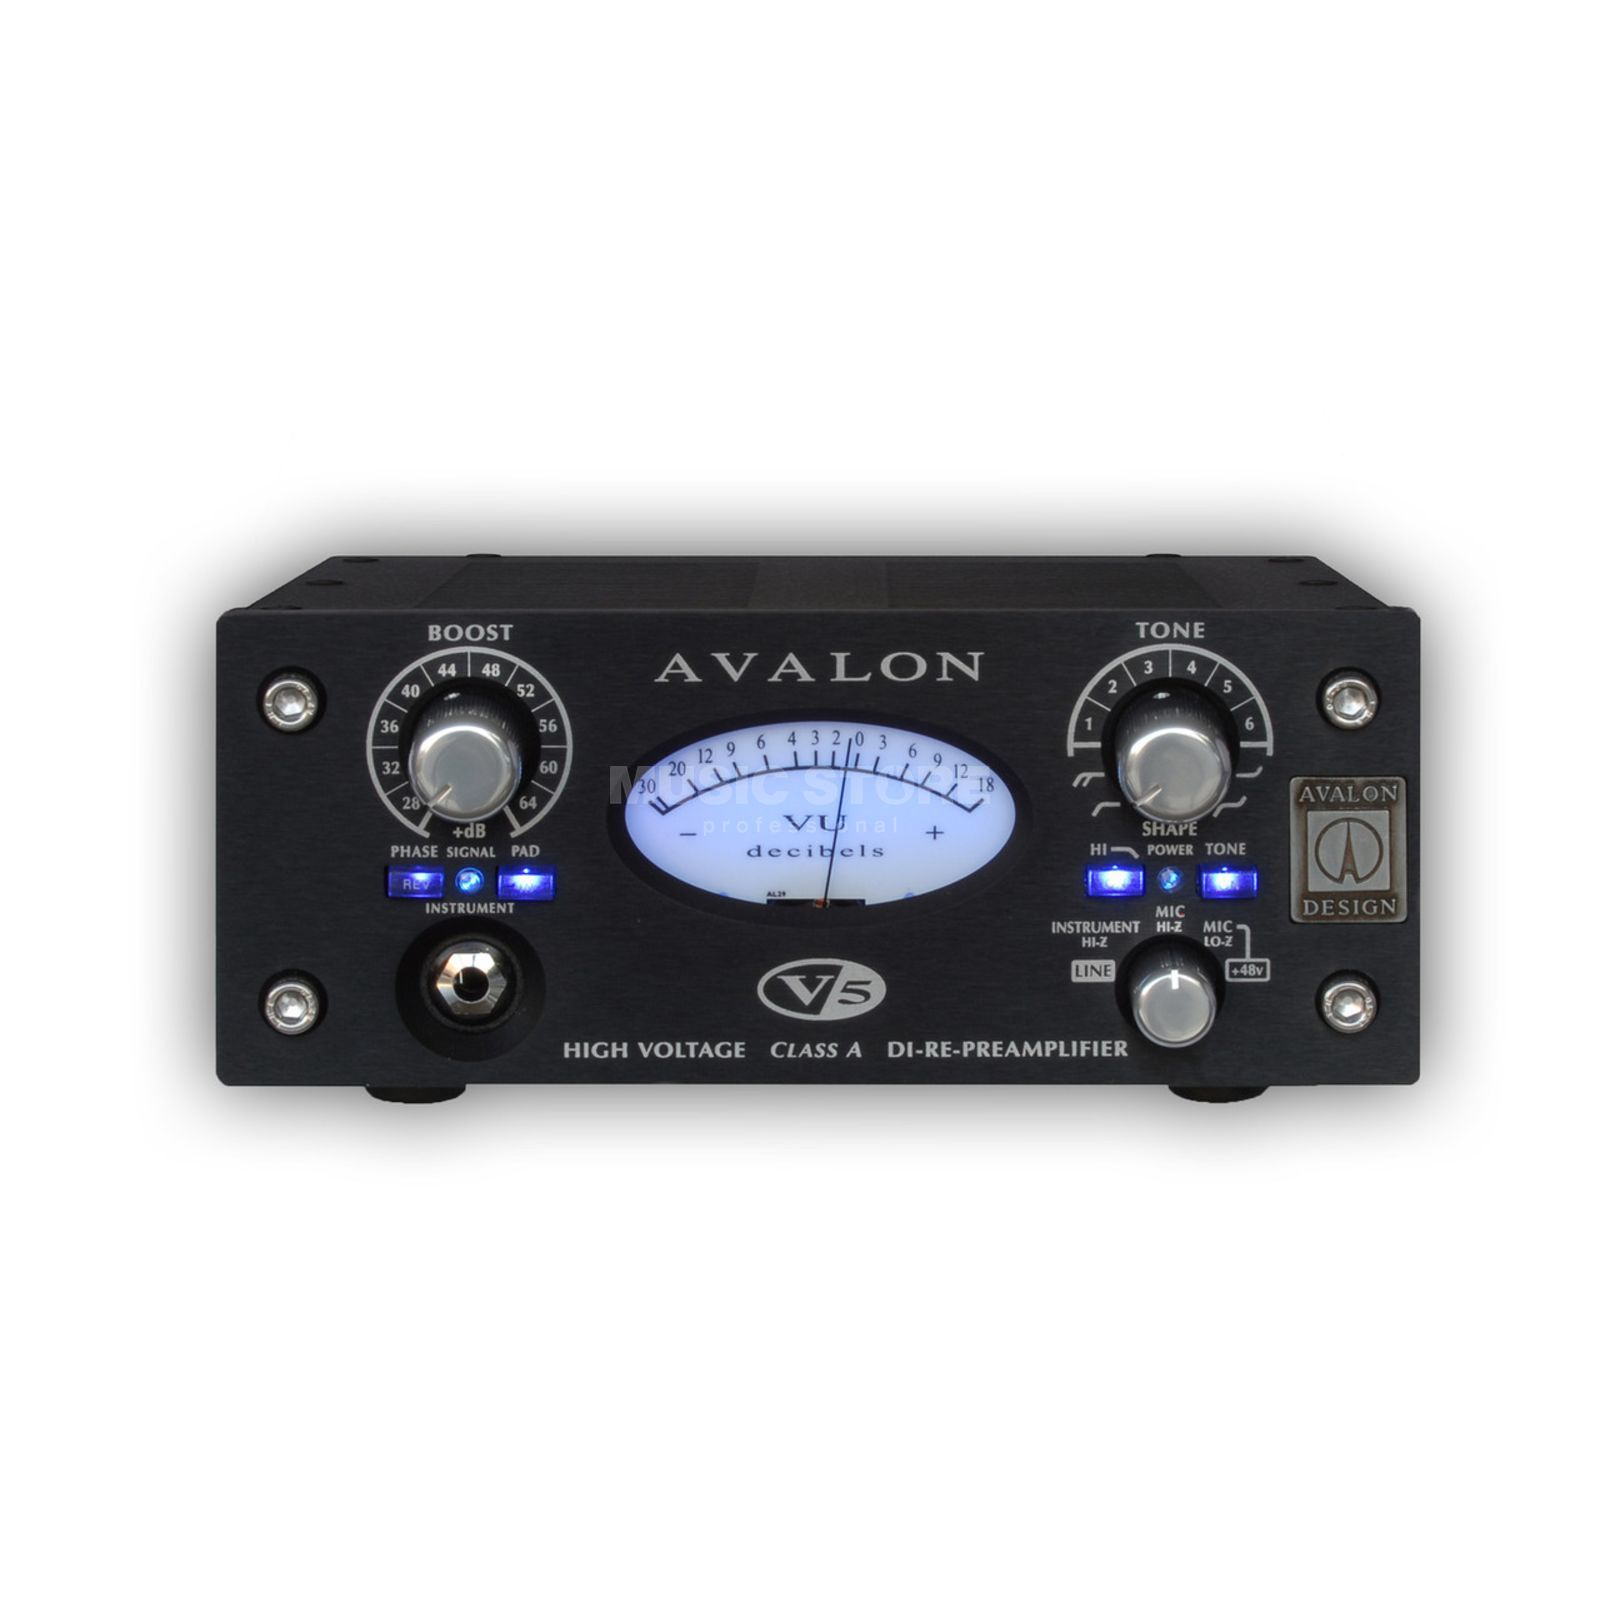 Avalon Design V5 Preamp & DI, Black    Produktbillede